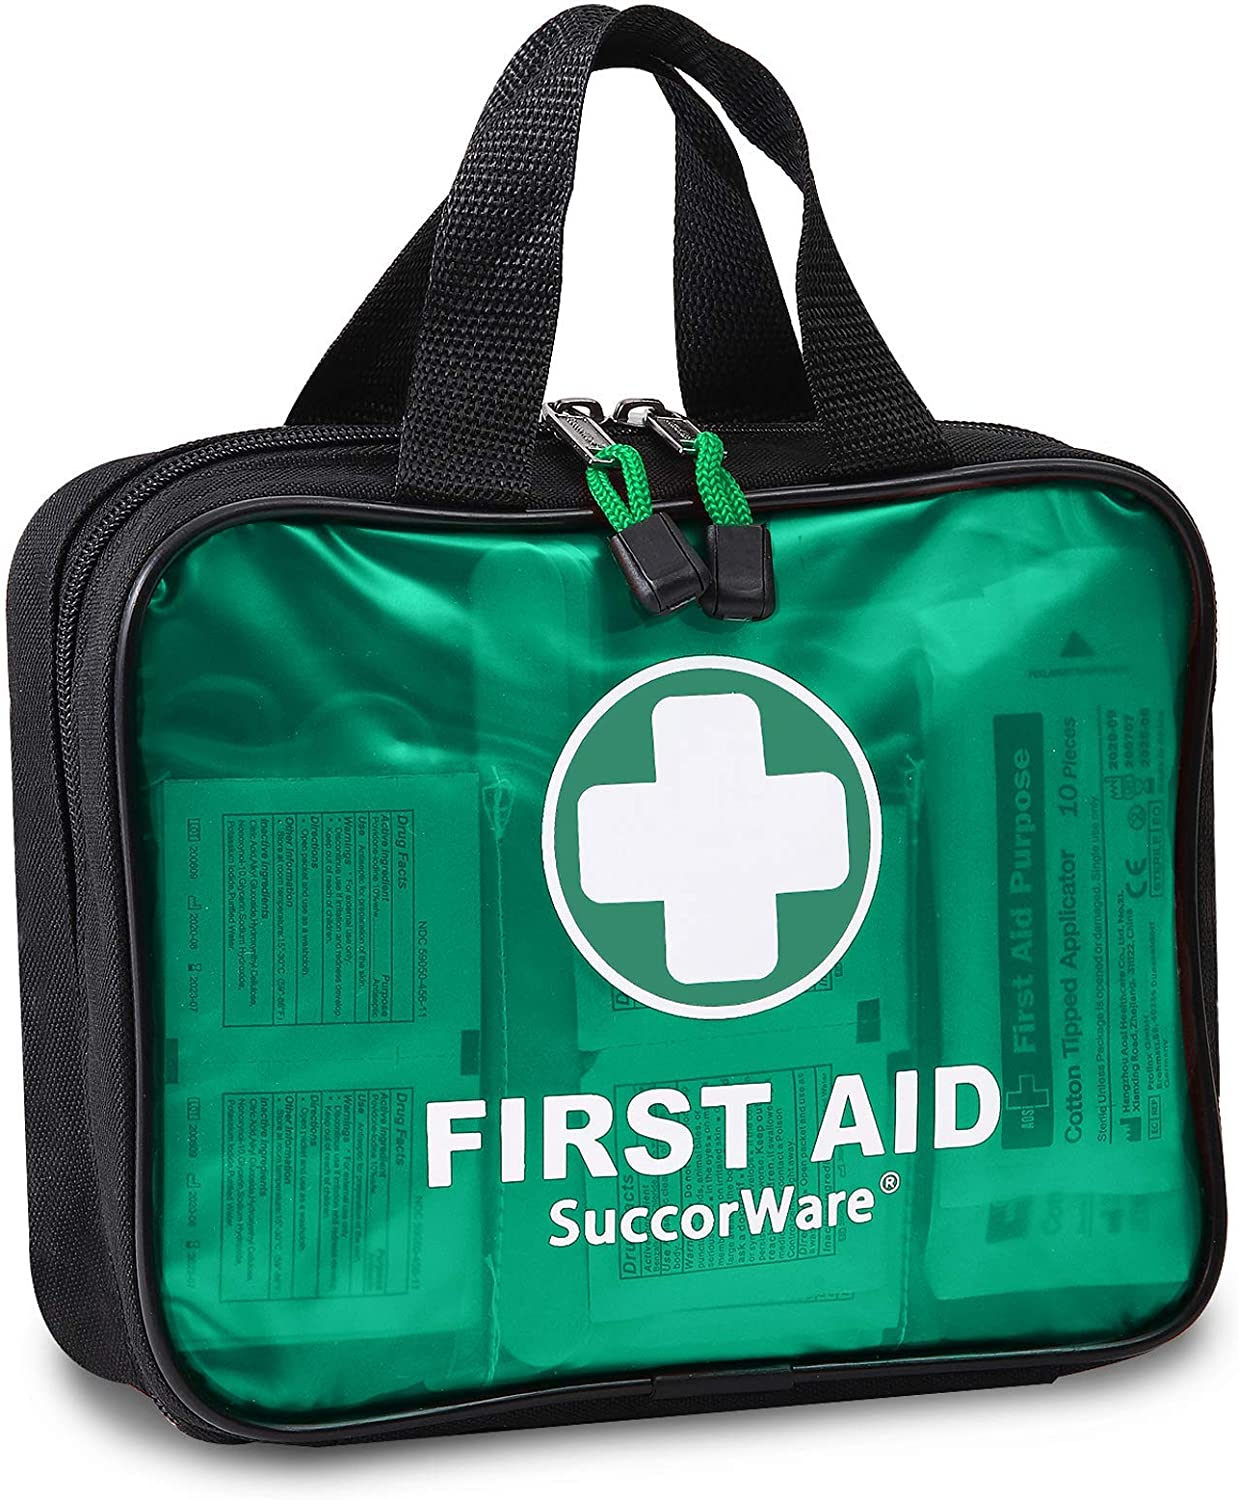 200 Pieces First Aid Branded goods Kit with depot Hospital Supplies Medical - Grade